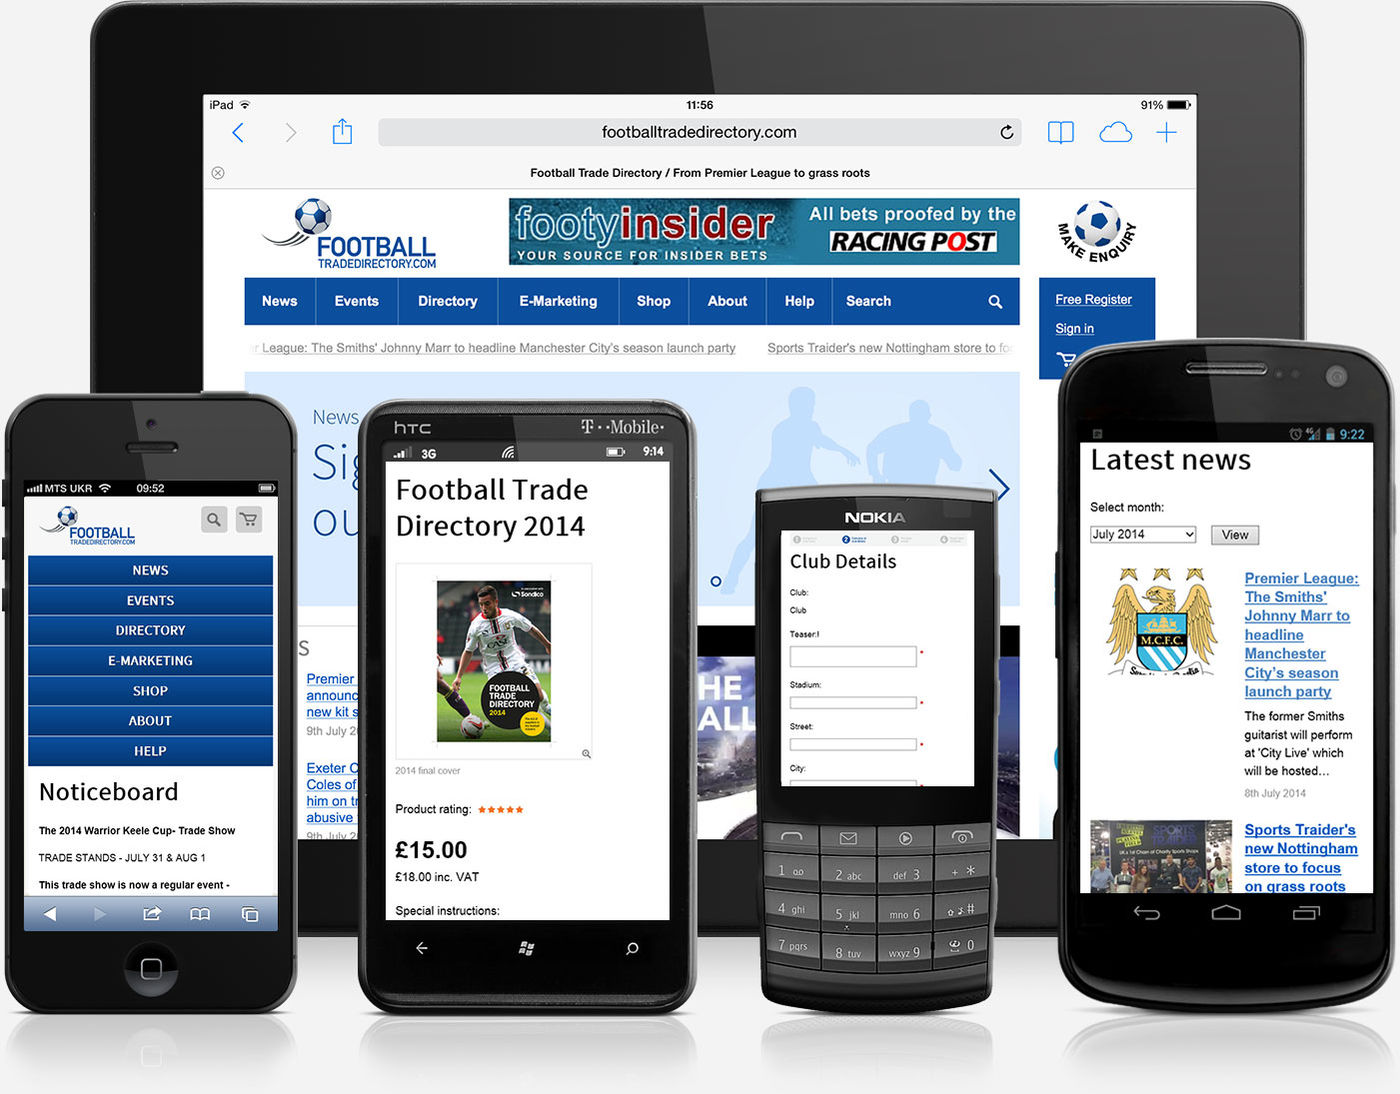 Football Trade Directory 2014 Mobile version Footbal Ttrade Directory